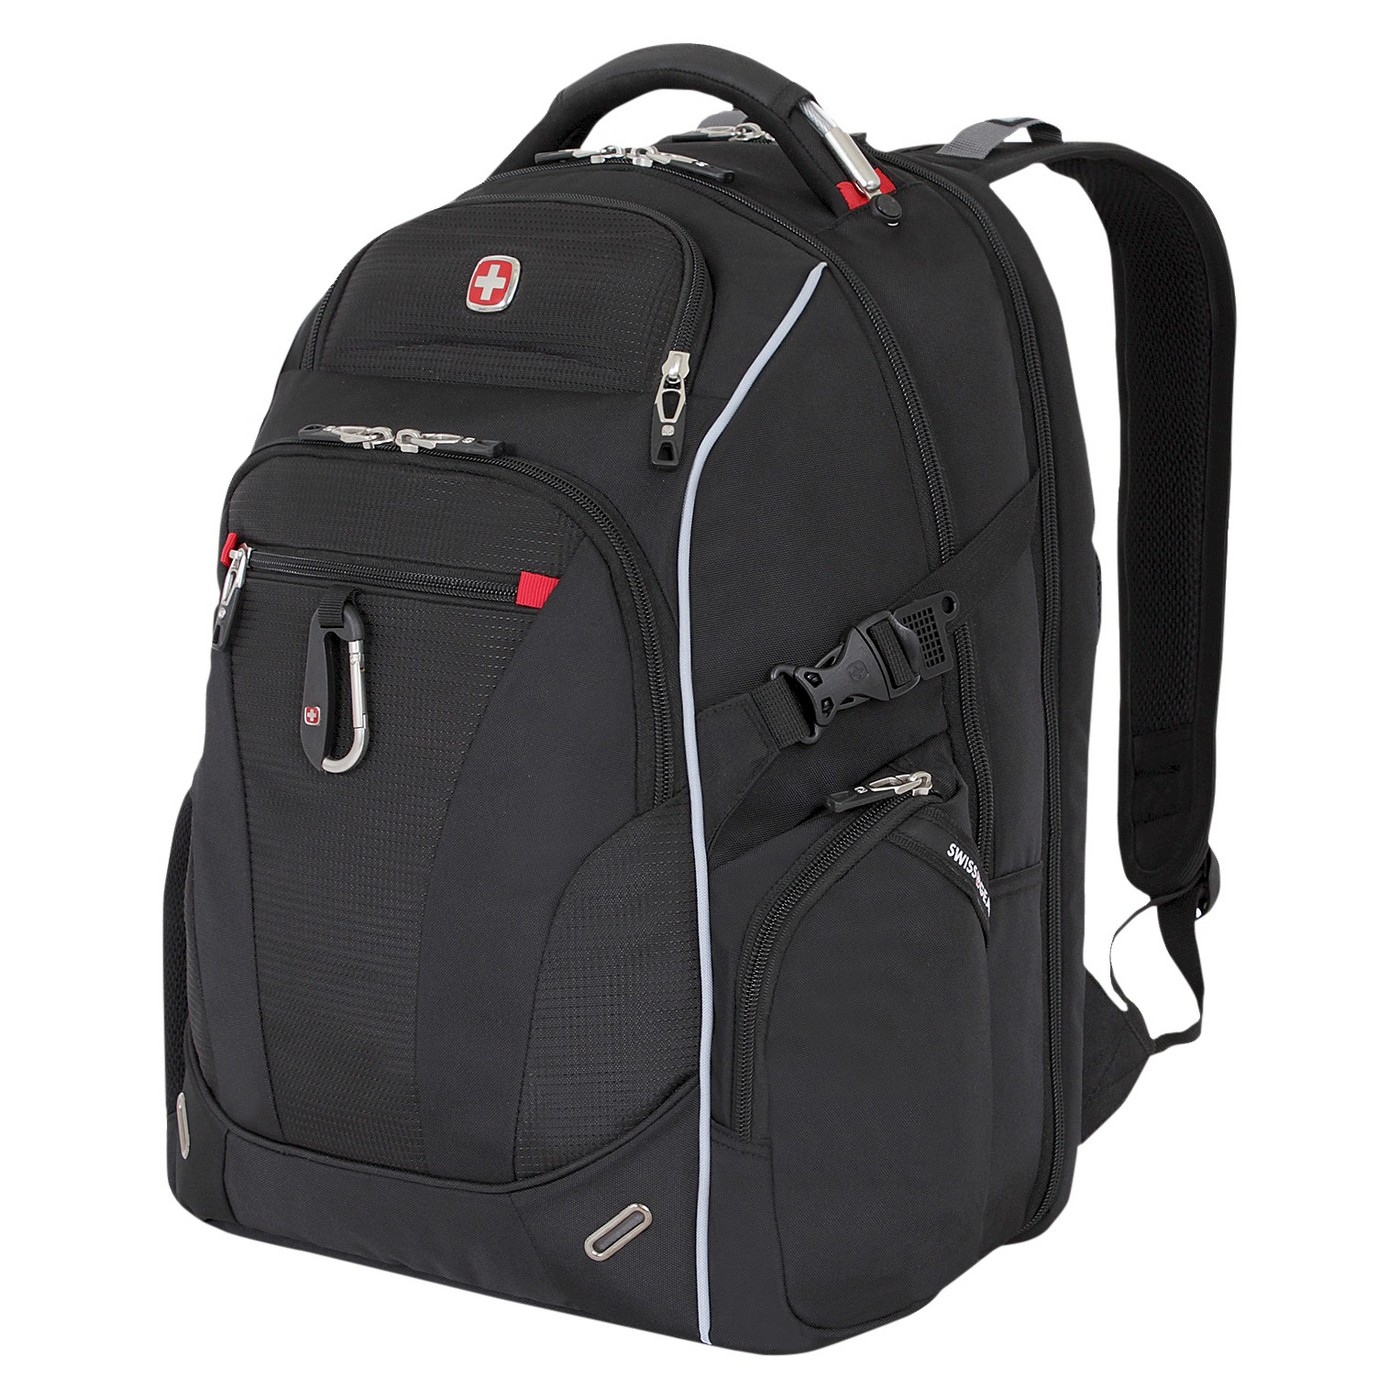 Save 10% on SWISSGEAR 18